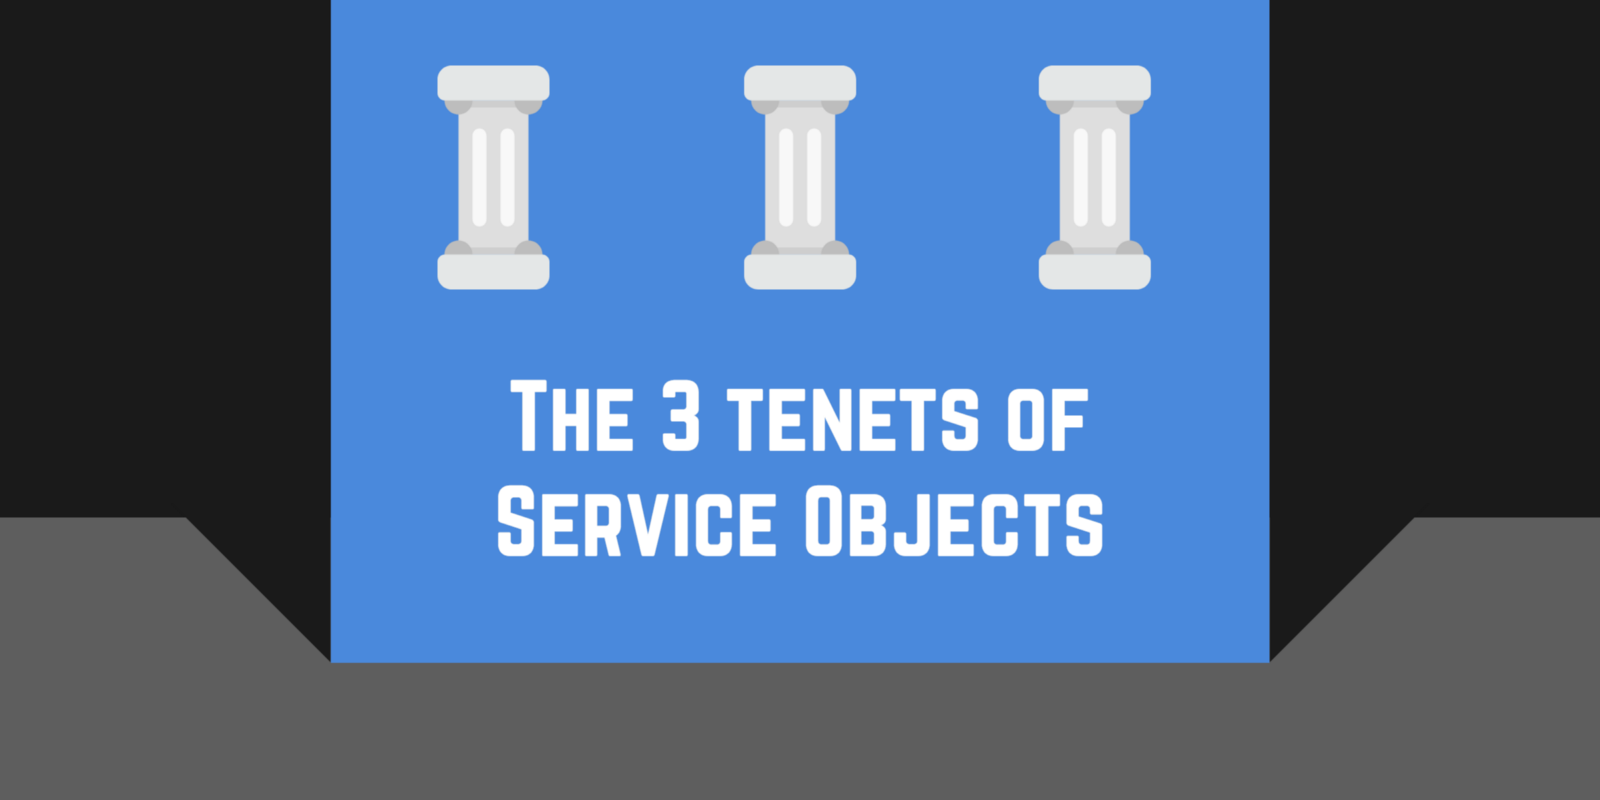 /the-3-tenets-of-service-objects-c936b891b3c2 feature image